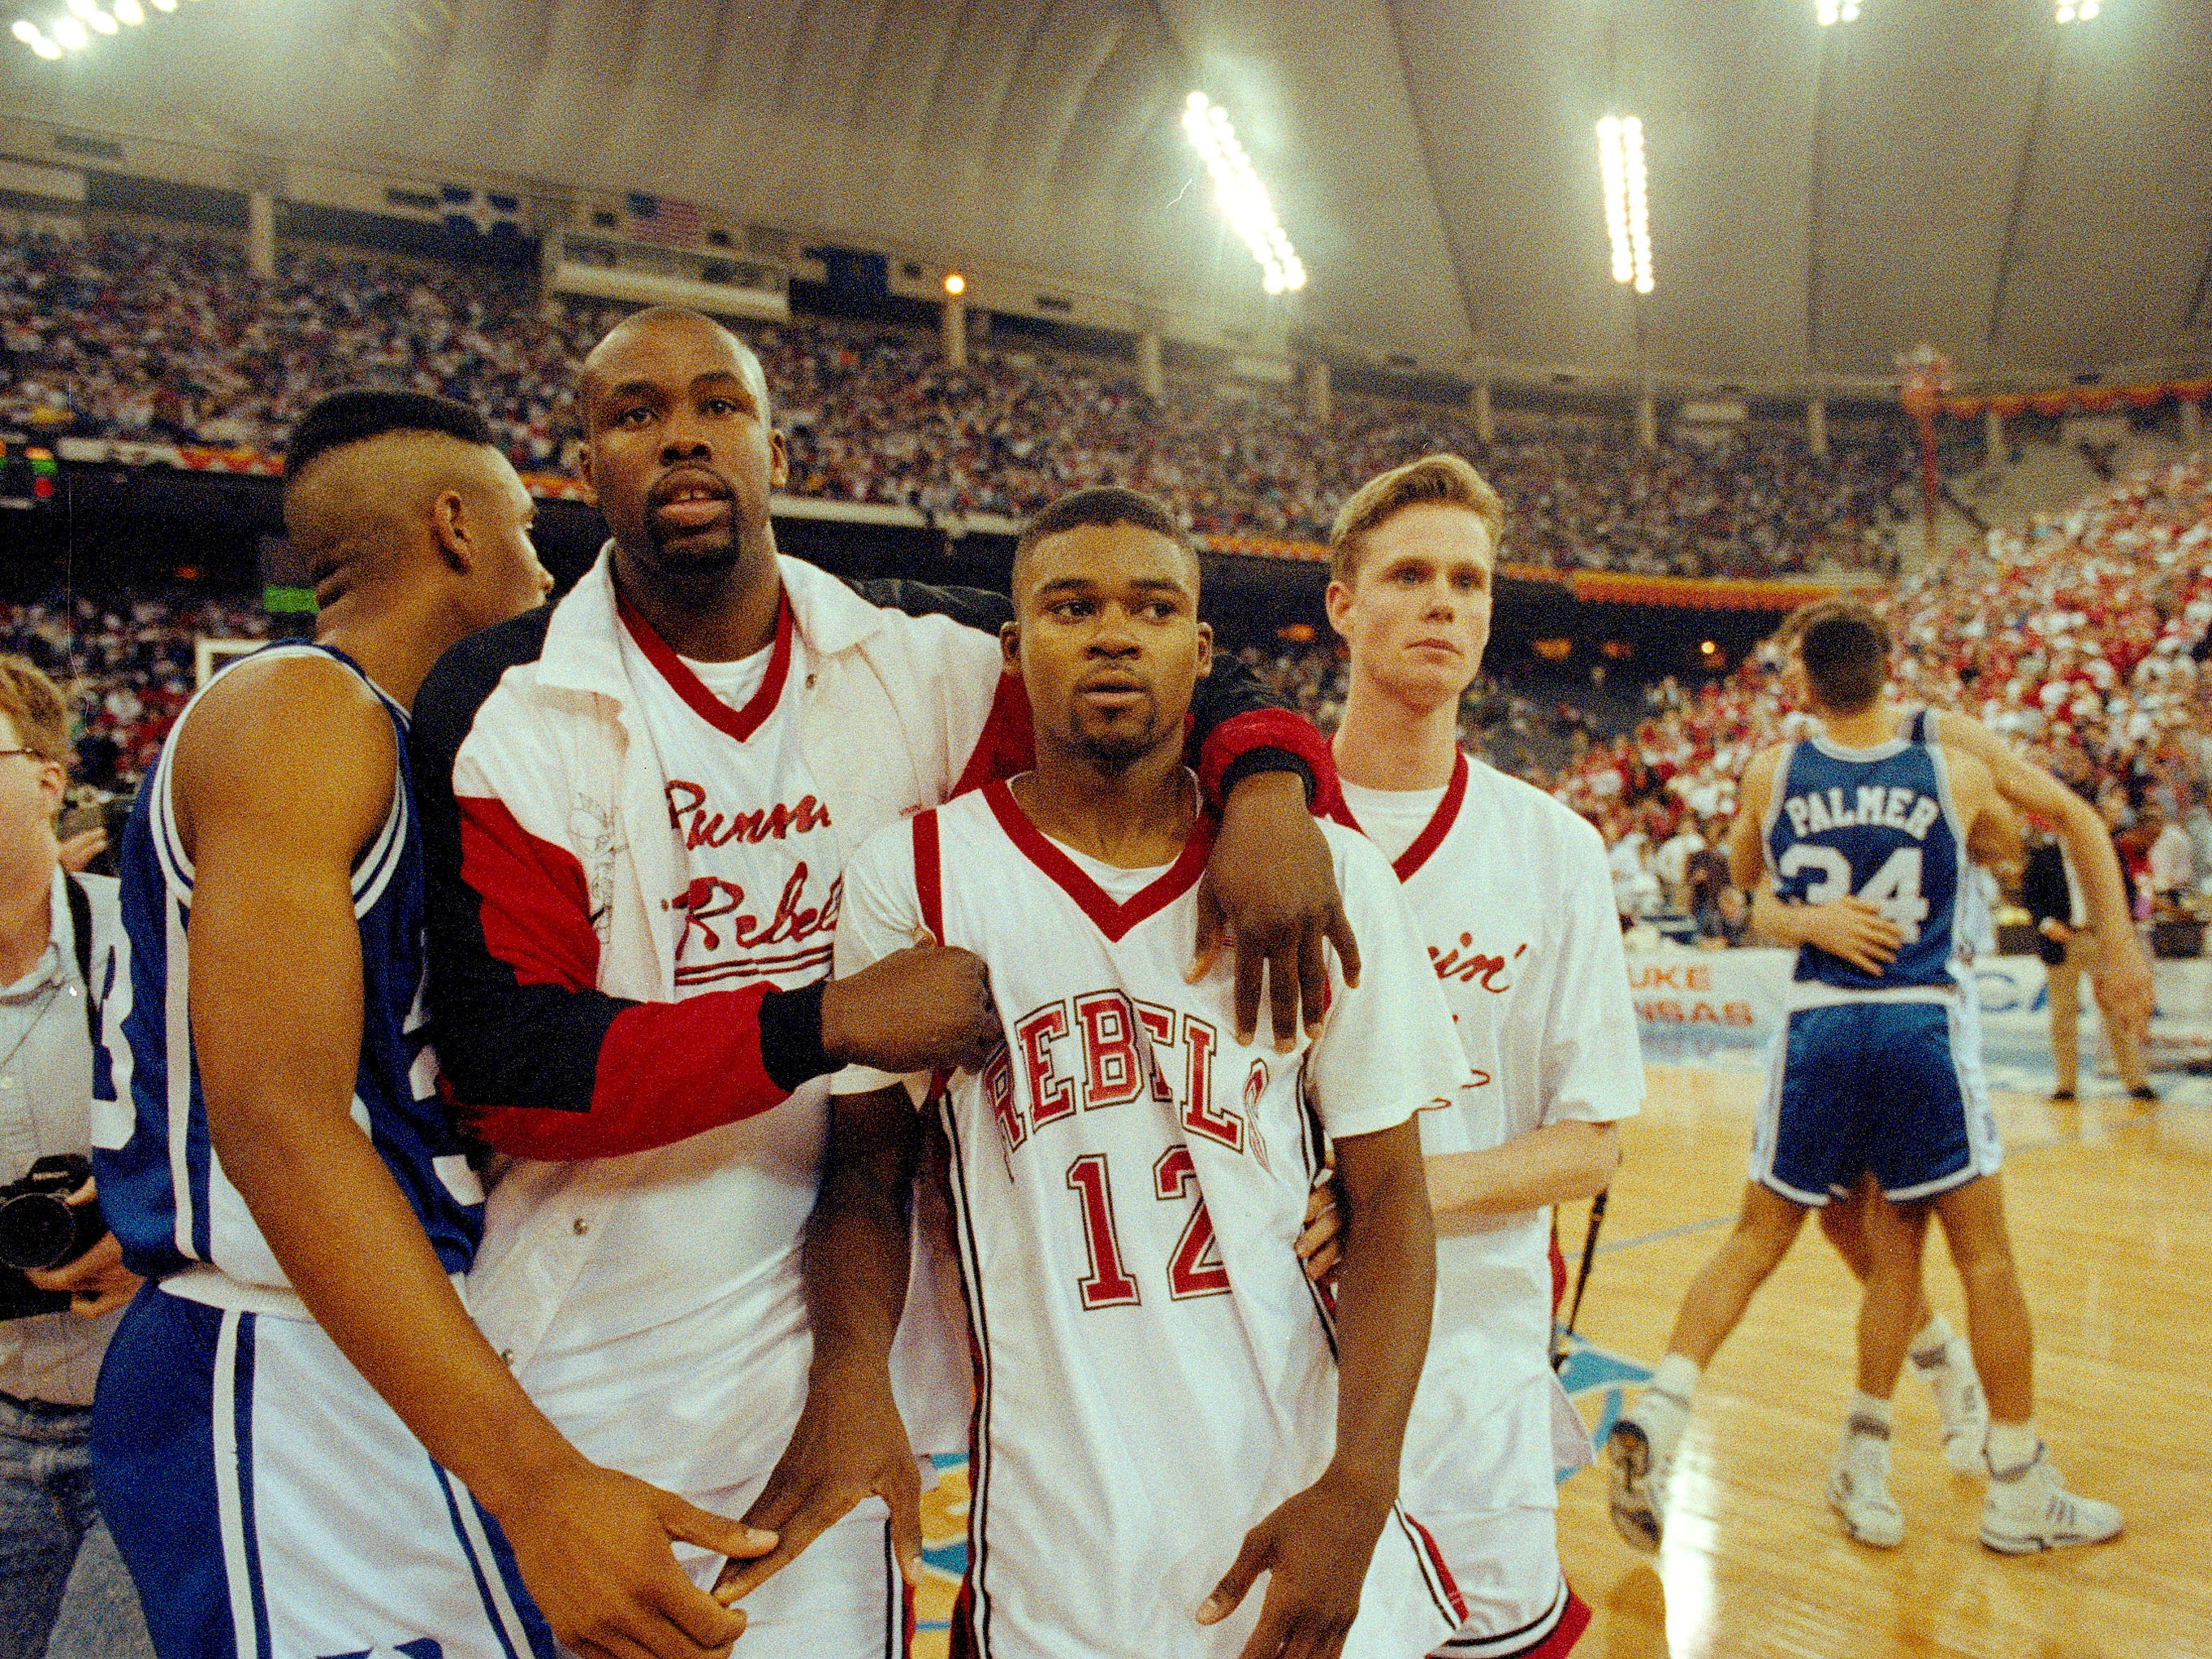 UNLV's Anderson Hunt (12) and unidentified teammates leave the floor after losing to Duke in the NCAA national semi-final game in Indianapolis, March 30, 1991. Duke defeated UNLV by a score of 79-77. (AP Photo/Al Behrman)